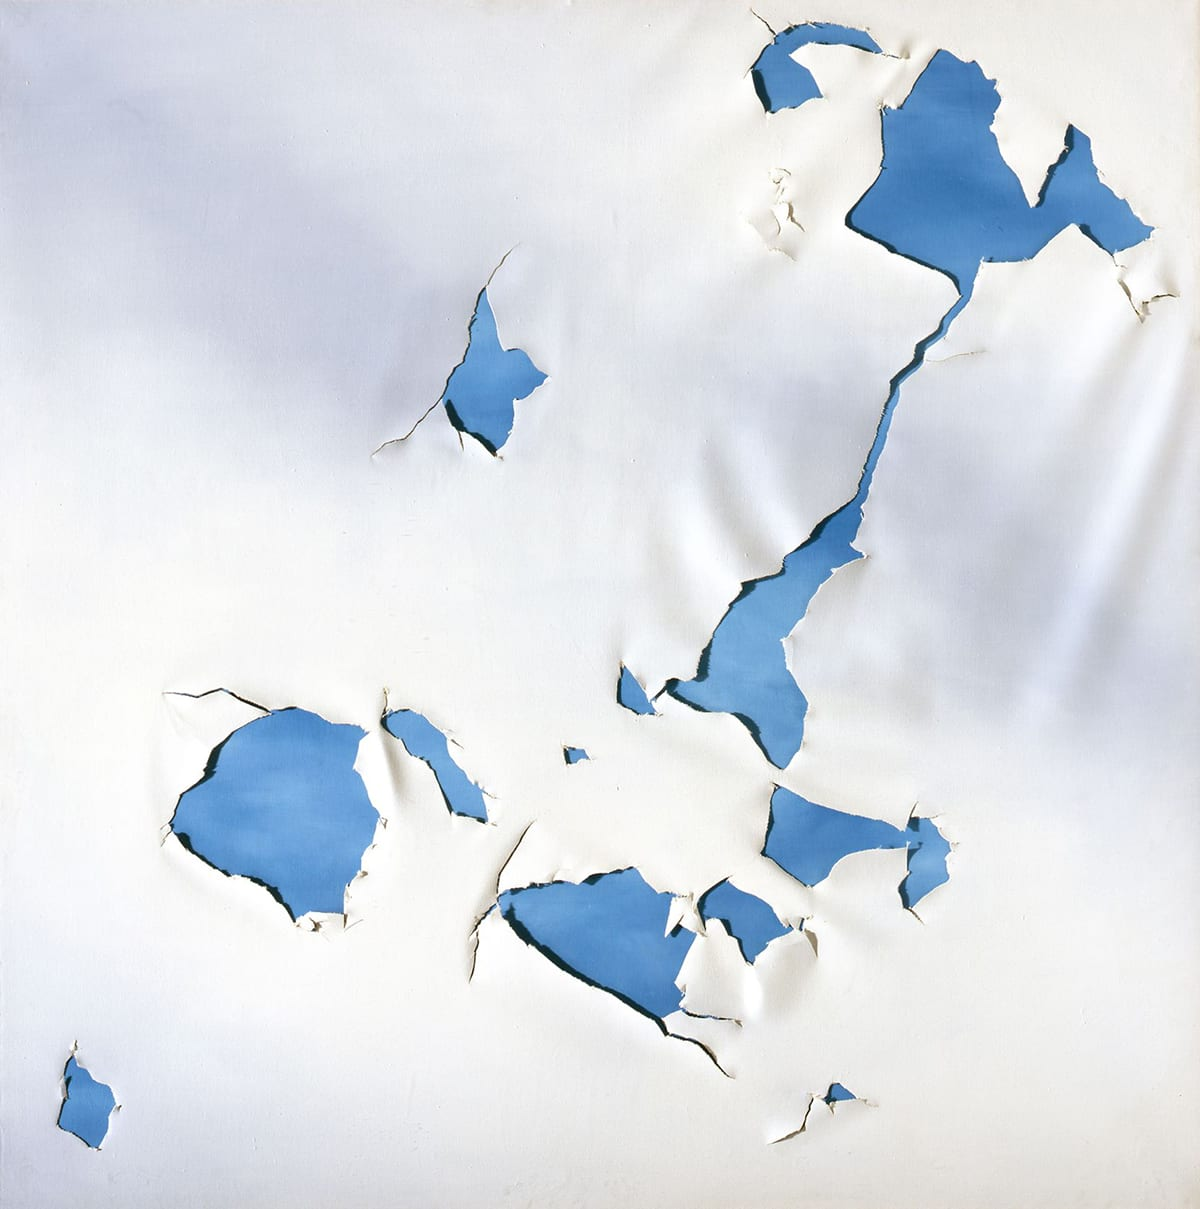 Torn Cloud Painting, Joe Goode, 60 x 60 inches, oil on canvas. A square work showing a white canvas torn to reveal a deep sky blue canvas beneath it. The tears begin in the upper right corner with a small roughly crescent shaped tear and a larger irregular jagged tear that connects via a narrow, crooked fissure to a triangular tear near the center of the work. Three more tears are located below and another two slightly above and to the left. Smaller diamond-shaped tears appear at upper center left and lower left. The edges of the tears are ragged with the canvas fraying in spots. Shallow folds of loose canvas are visible as the material sags in spots. These create shadows in addition to the ones made on the blue canvas by the gaping holes.